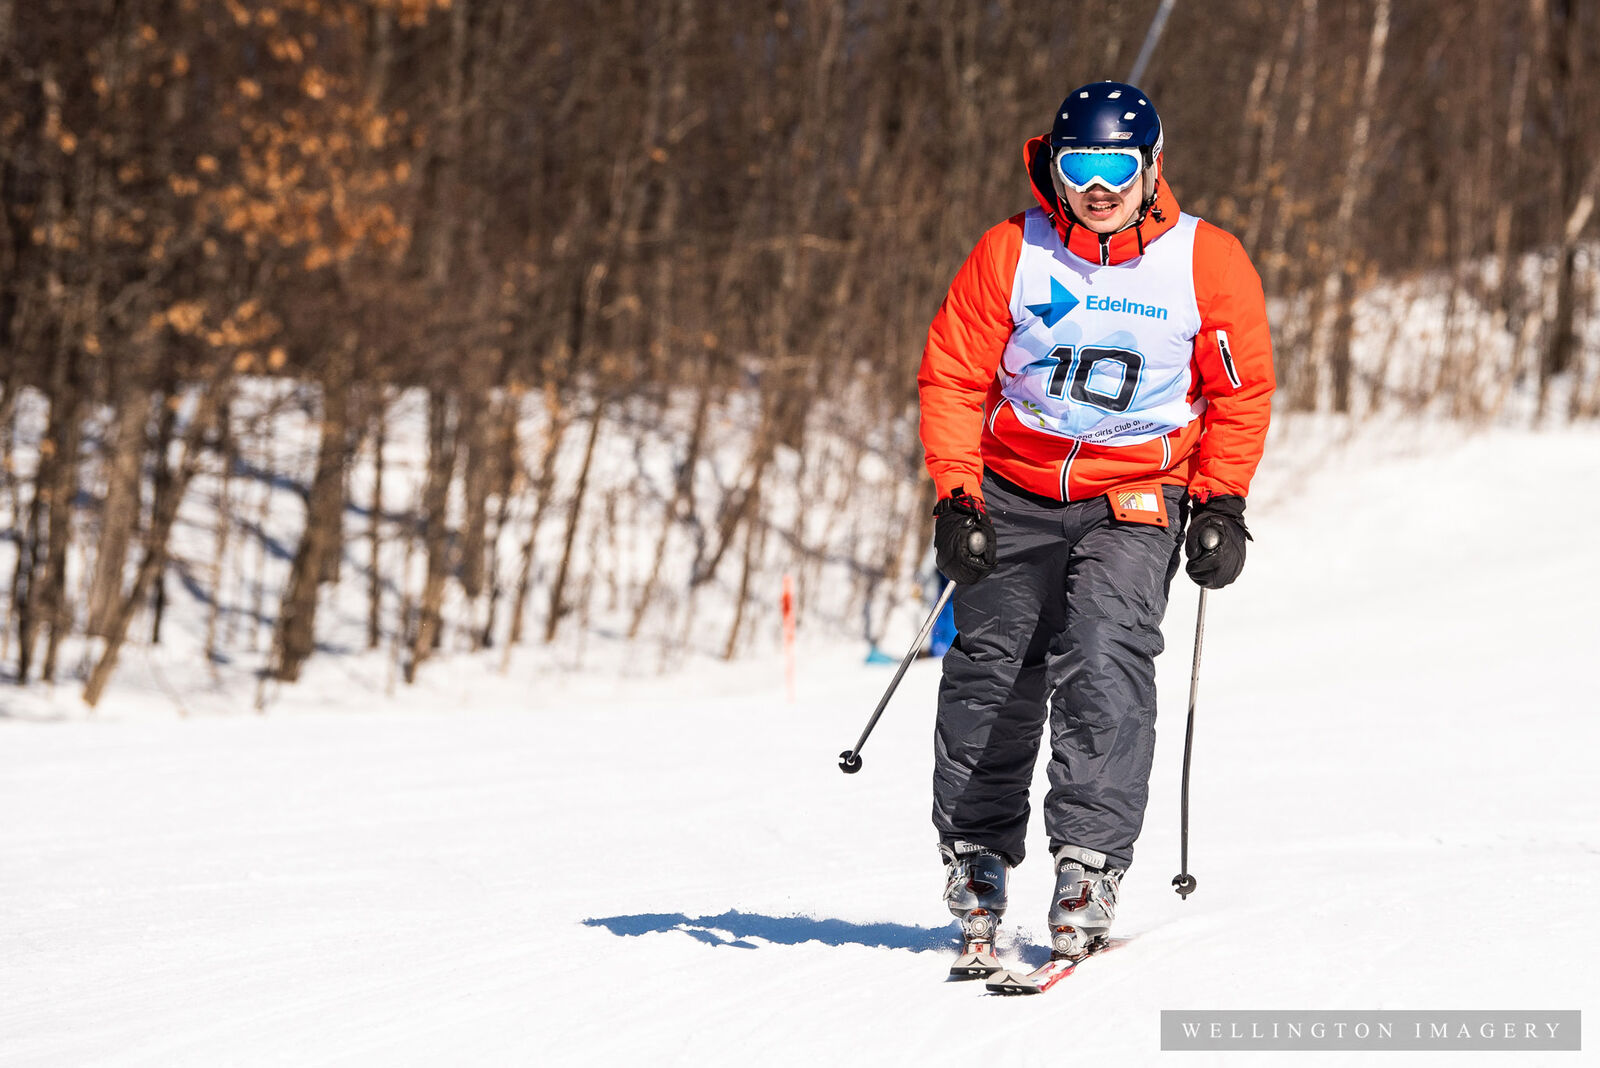 ©WELLINGTONIMAGERY 20190228 144241 BGCO Skiathon 1916 WM 2048px